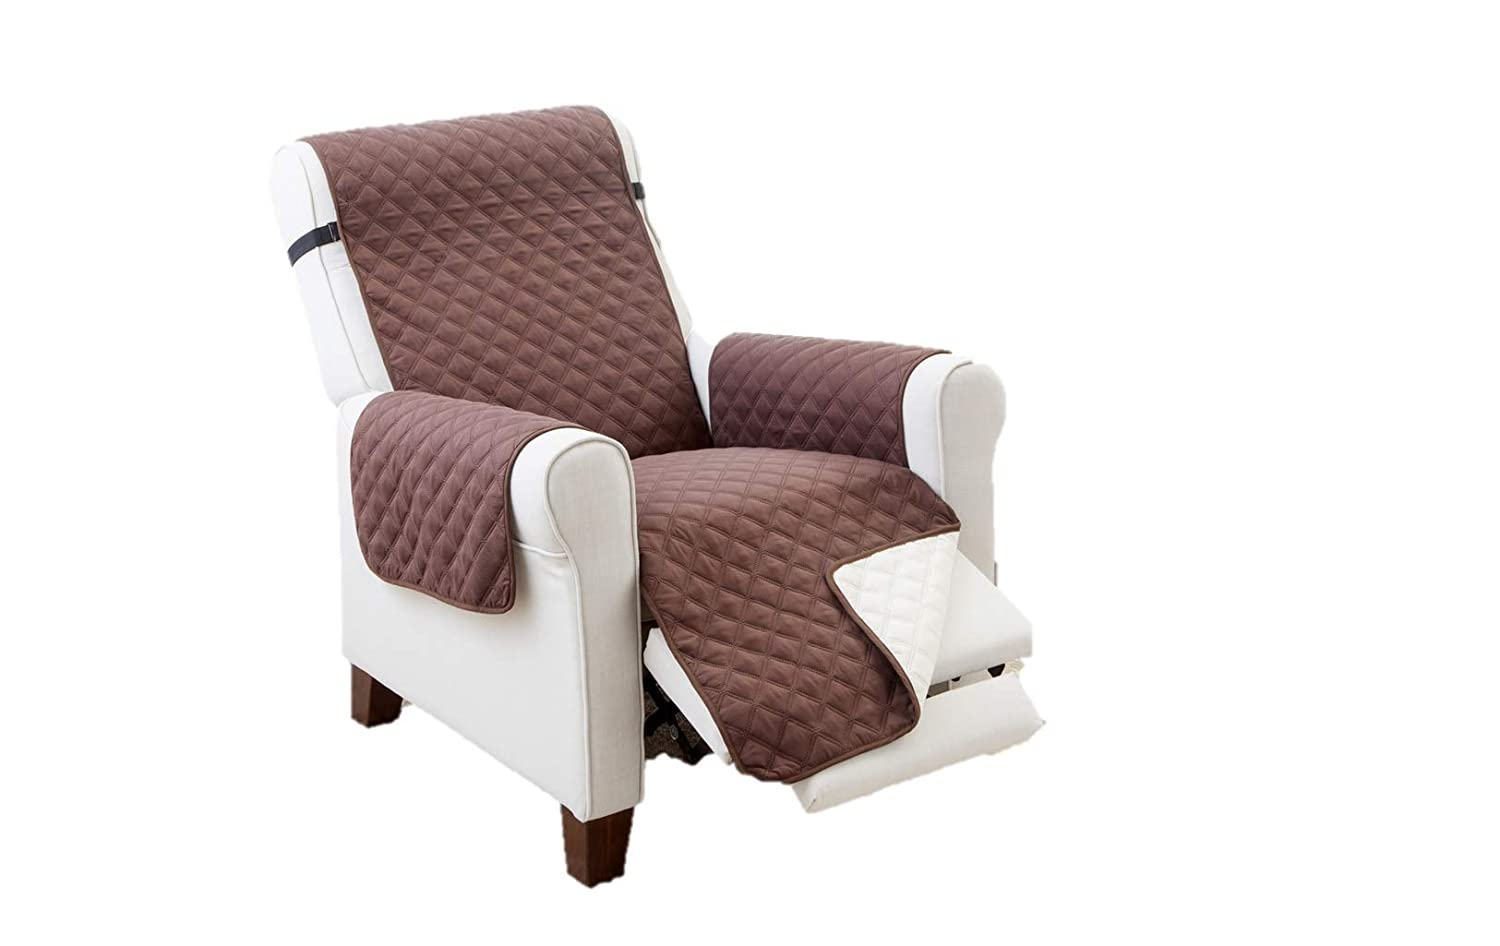 Sofa Slipcovers Online Shopping For Clothing Shoes